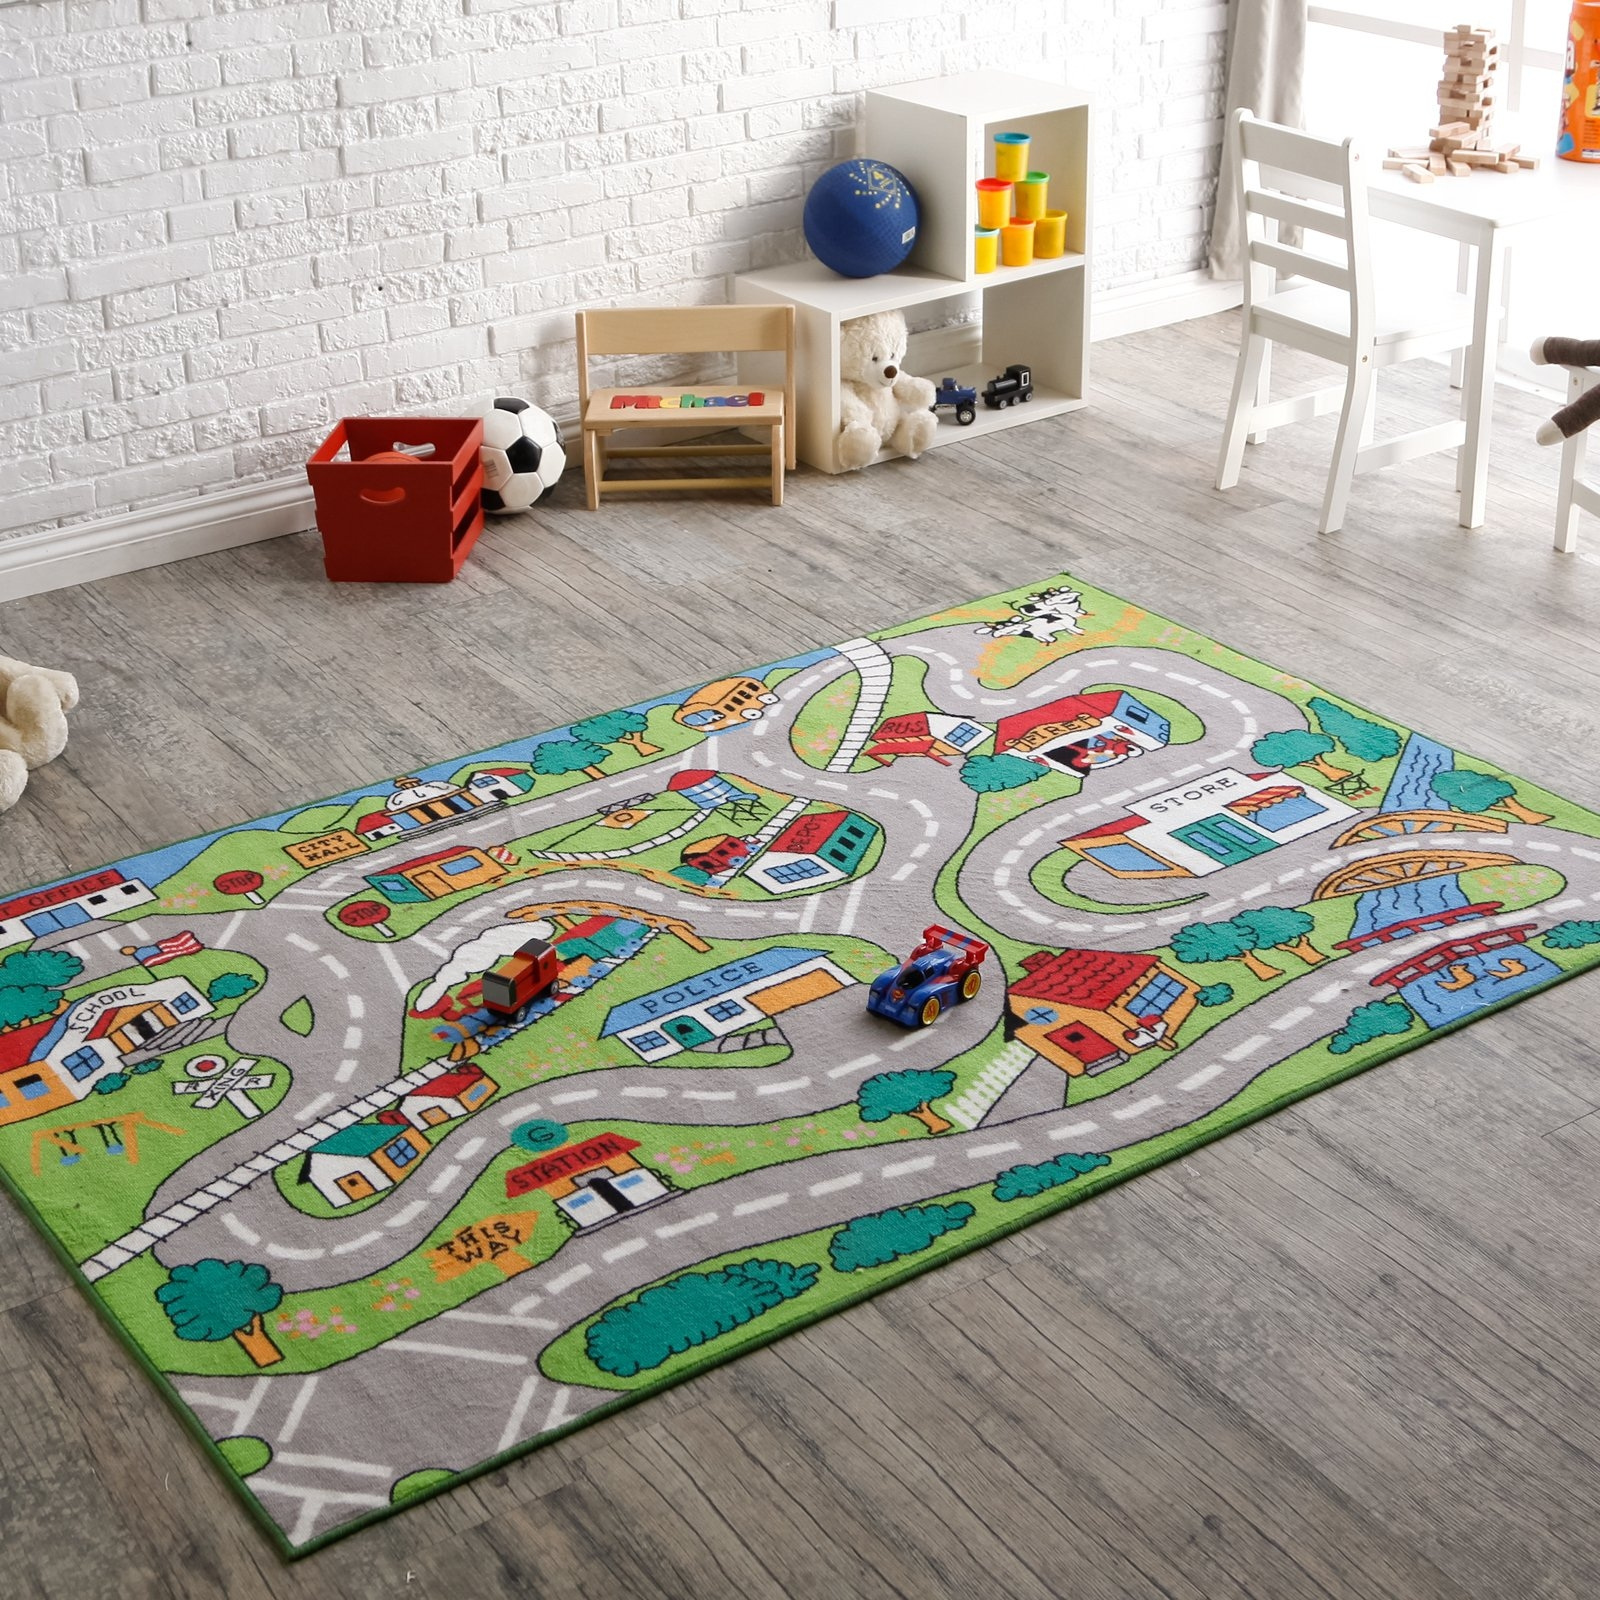 Best Rugs For Kids Roselawnlutheran For Carpet For Kids Rooms (Image 5 of 15)